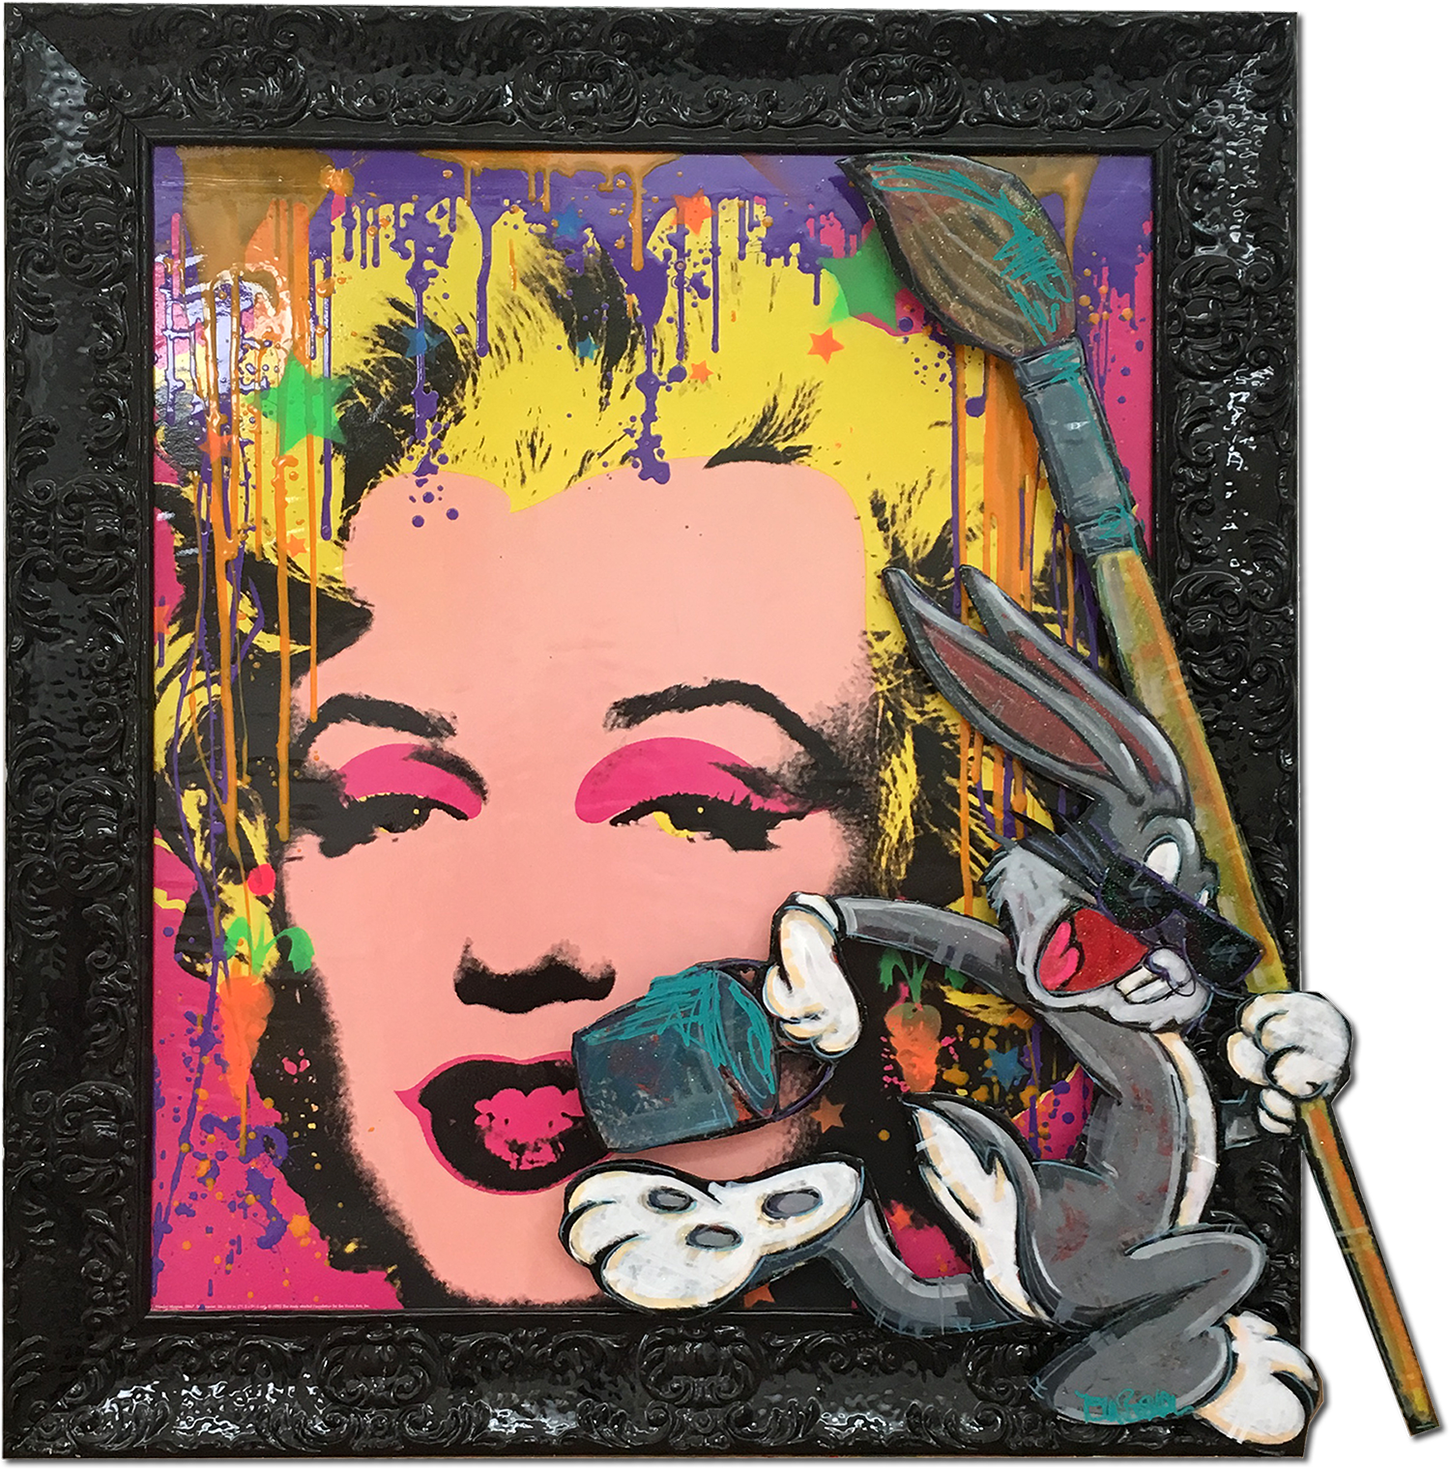 Tom Boston - Banksy visit Warhol , 8017-006-309